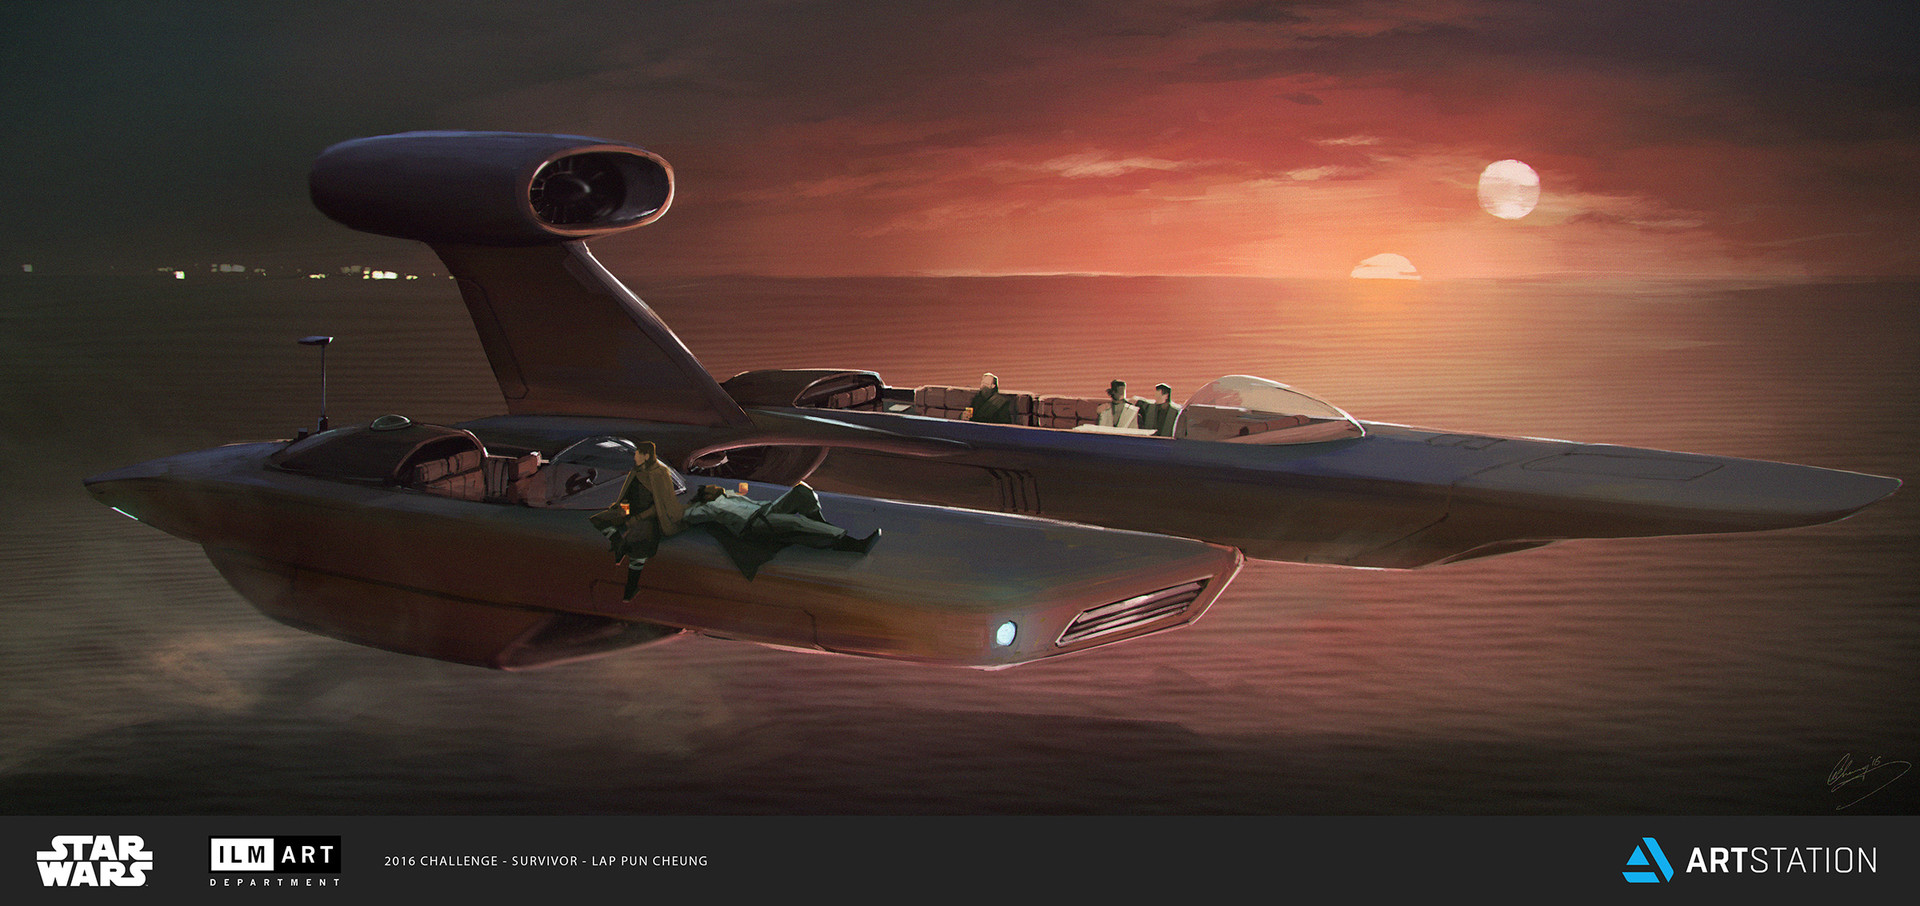 ILM Art Department Challenge - The Ride - X99 Luxor Landspeeder